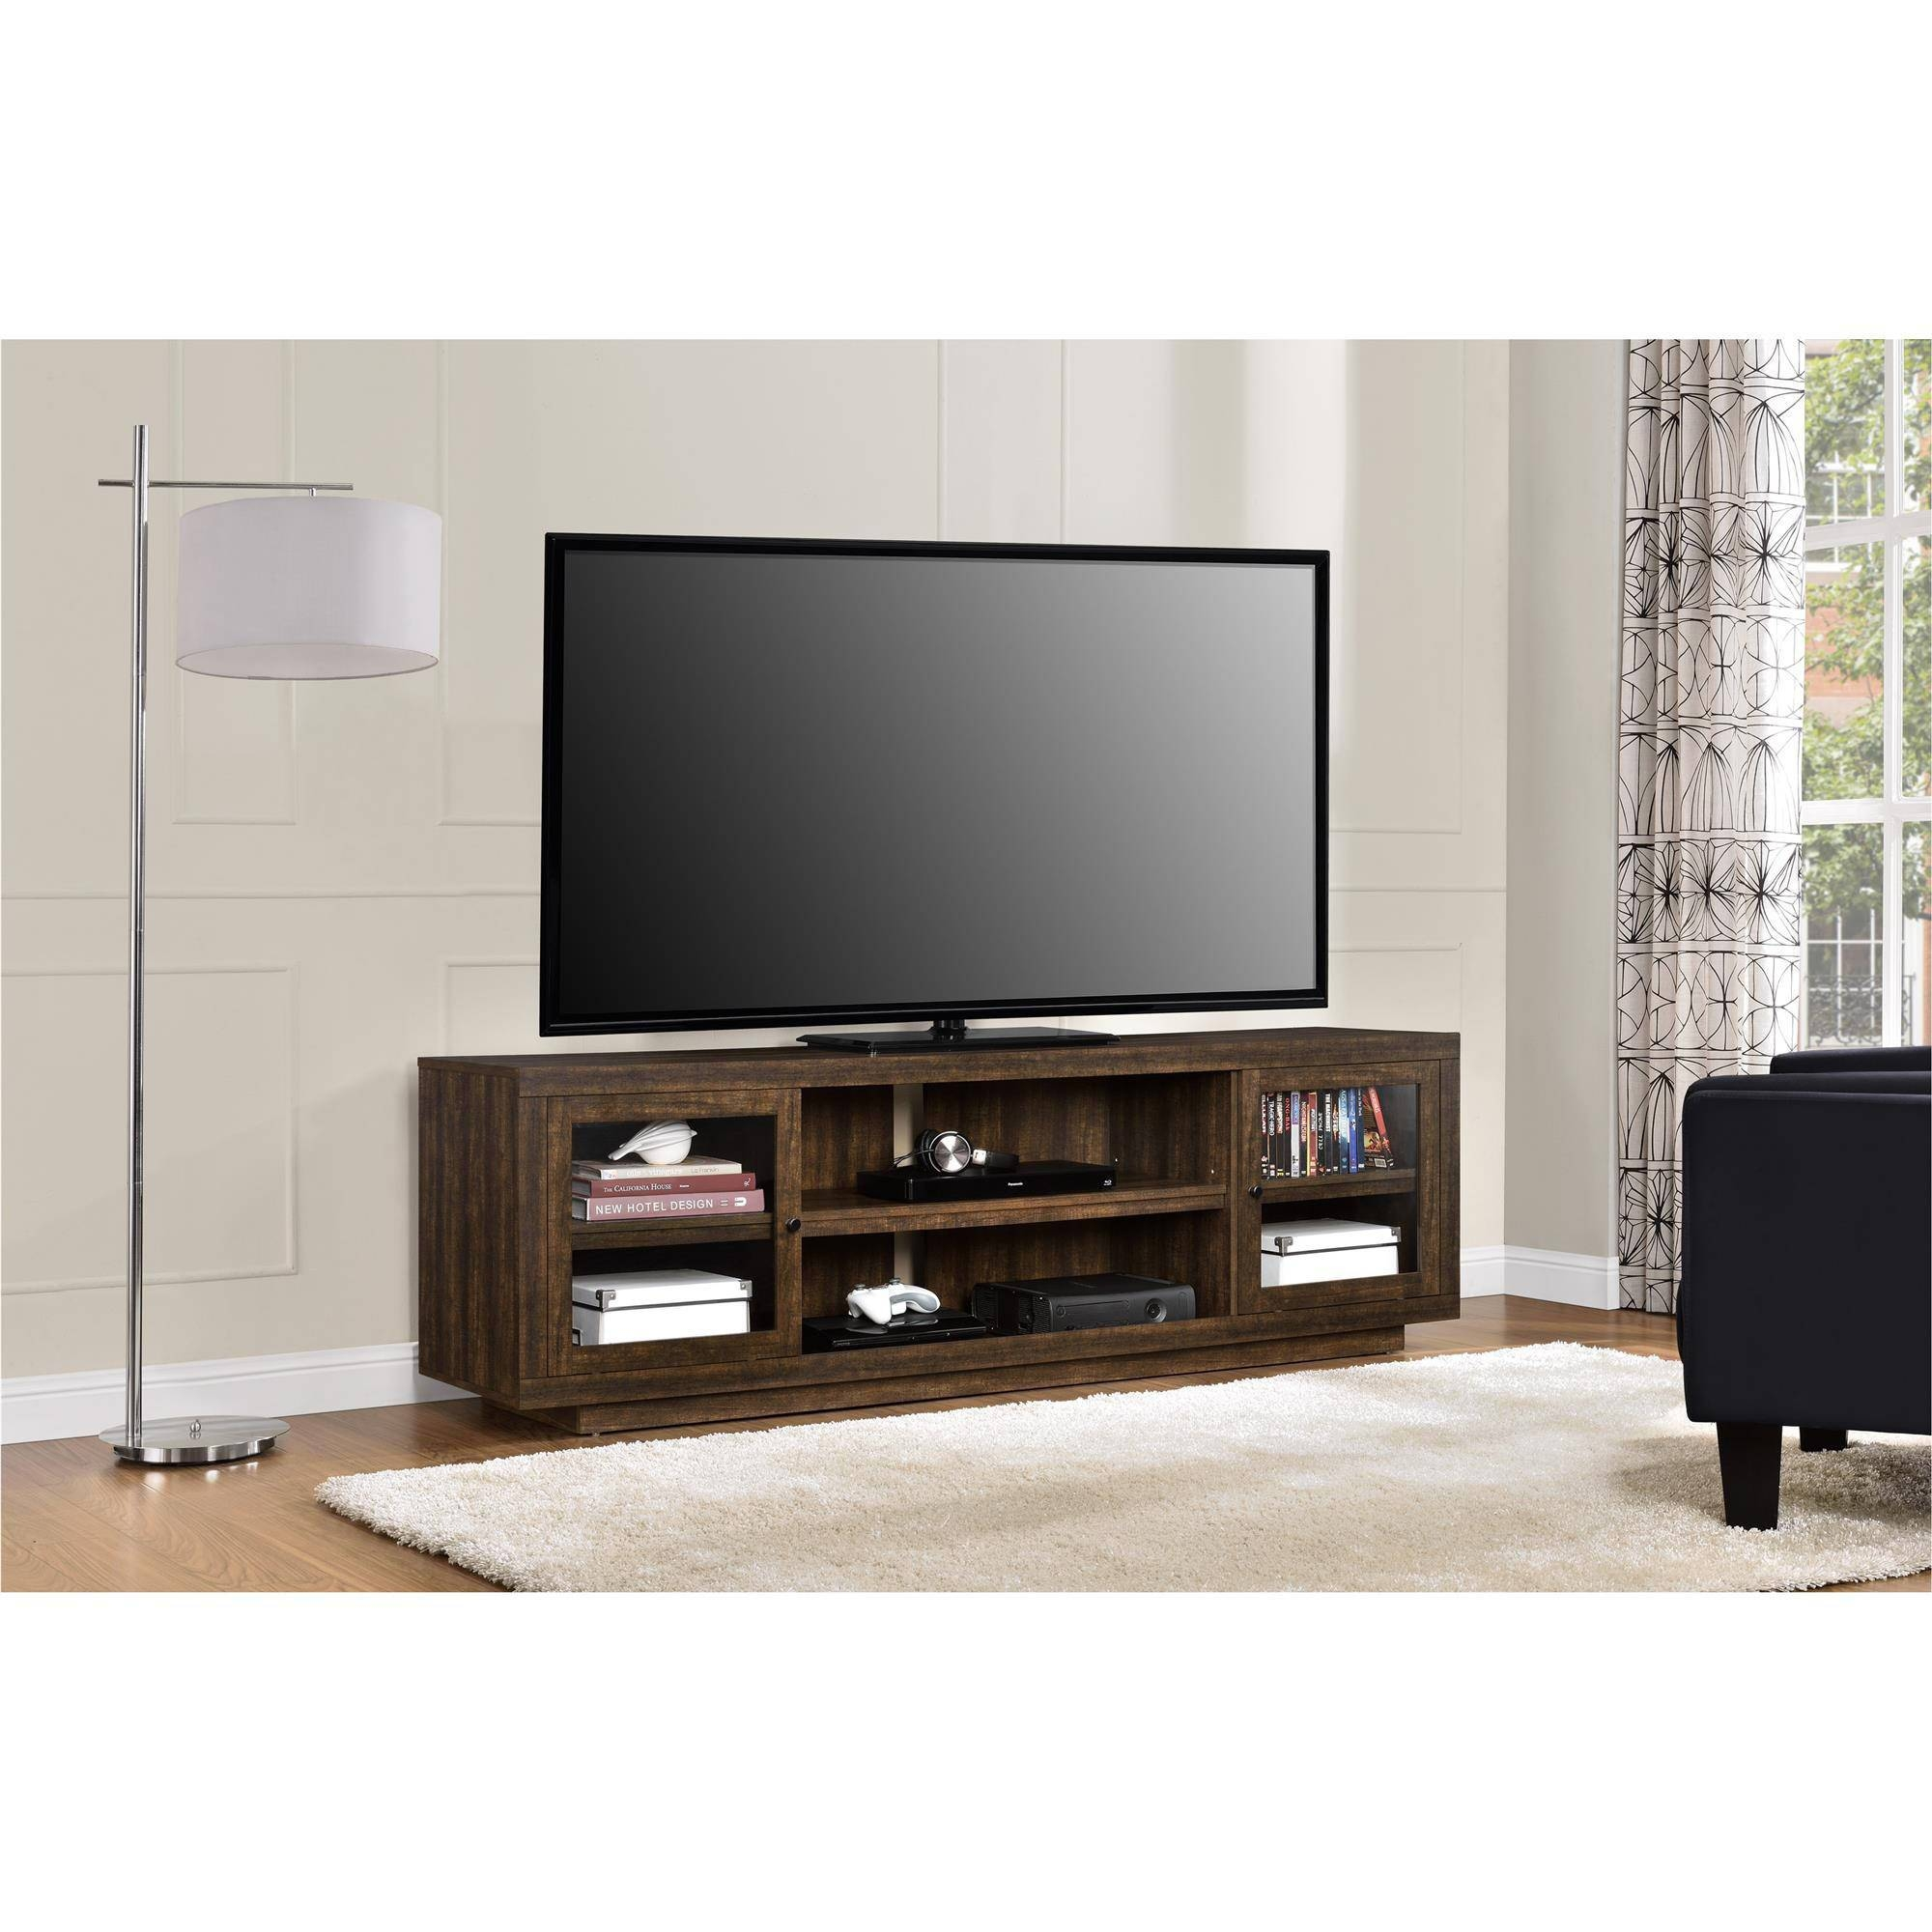 "Mainstays Tv Stand For Flat-Screen Tvs Up To 47"", Multiple Finish inside Como Tv Stands (Image 7 of 15)"